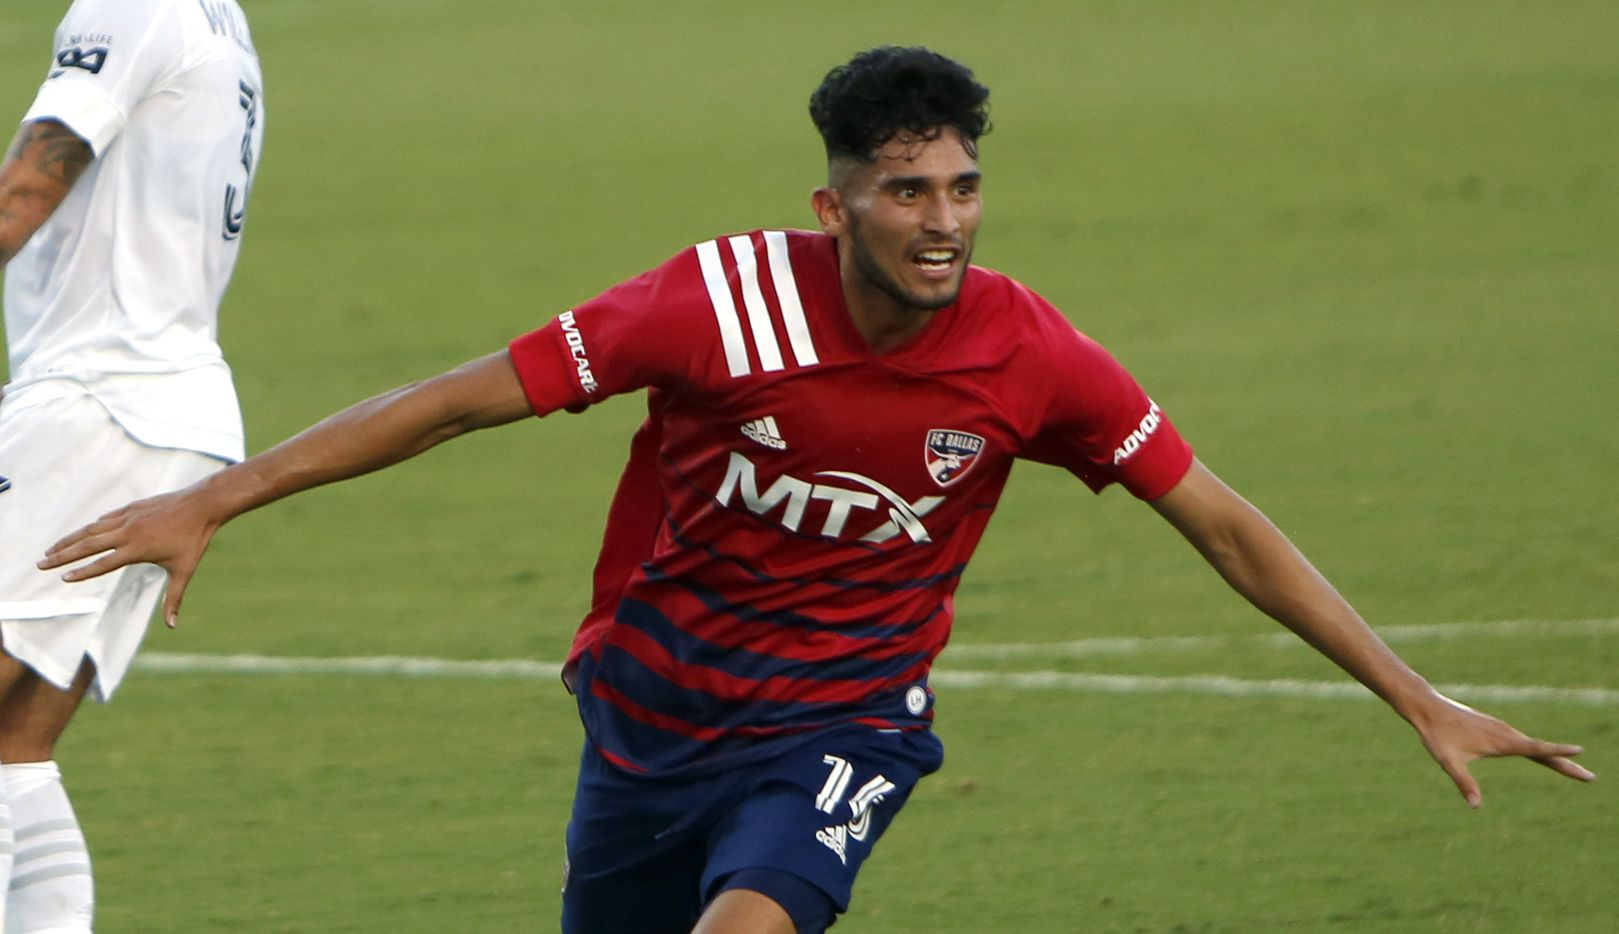 FC Dallas forward Ricardo Pepe (16) celebrates a goal to break a scoreless tie during first half action against LA Galaxy. The two teams played their MLS match at Toyota Stadium in Frisco on July 24, 2021.